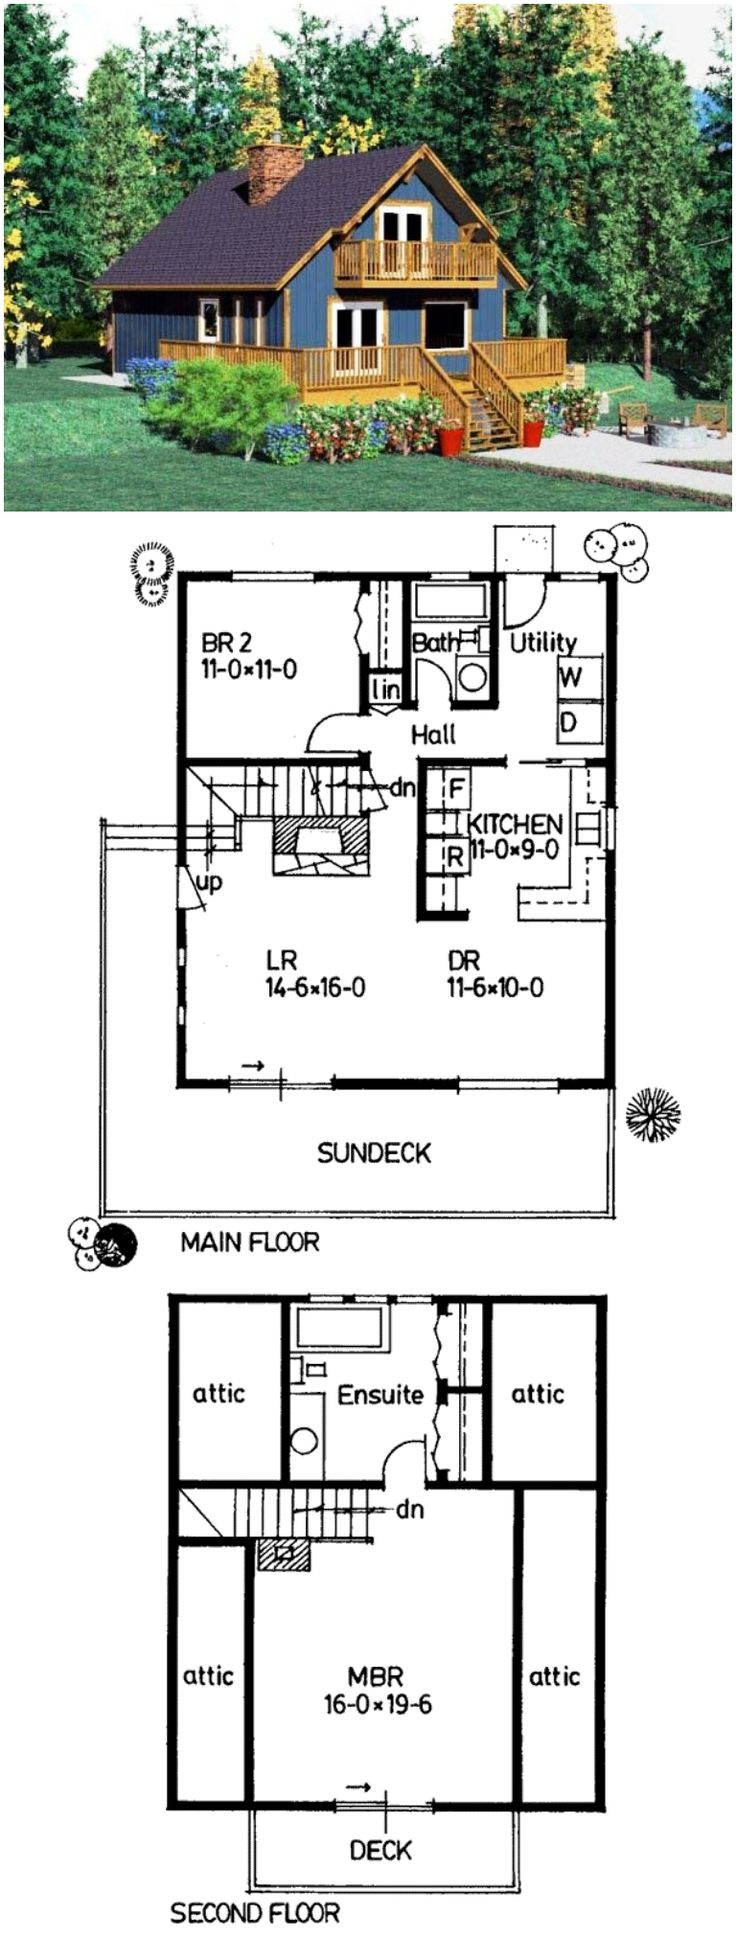 25 best ideas about tiny house plans on pinterest small Small cabin blueprints free